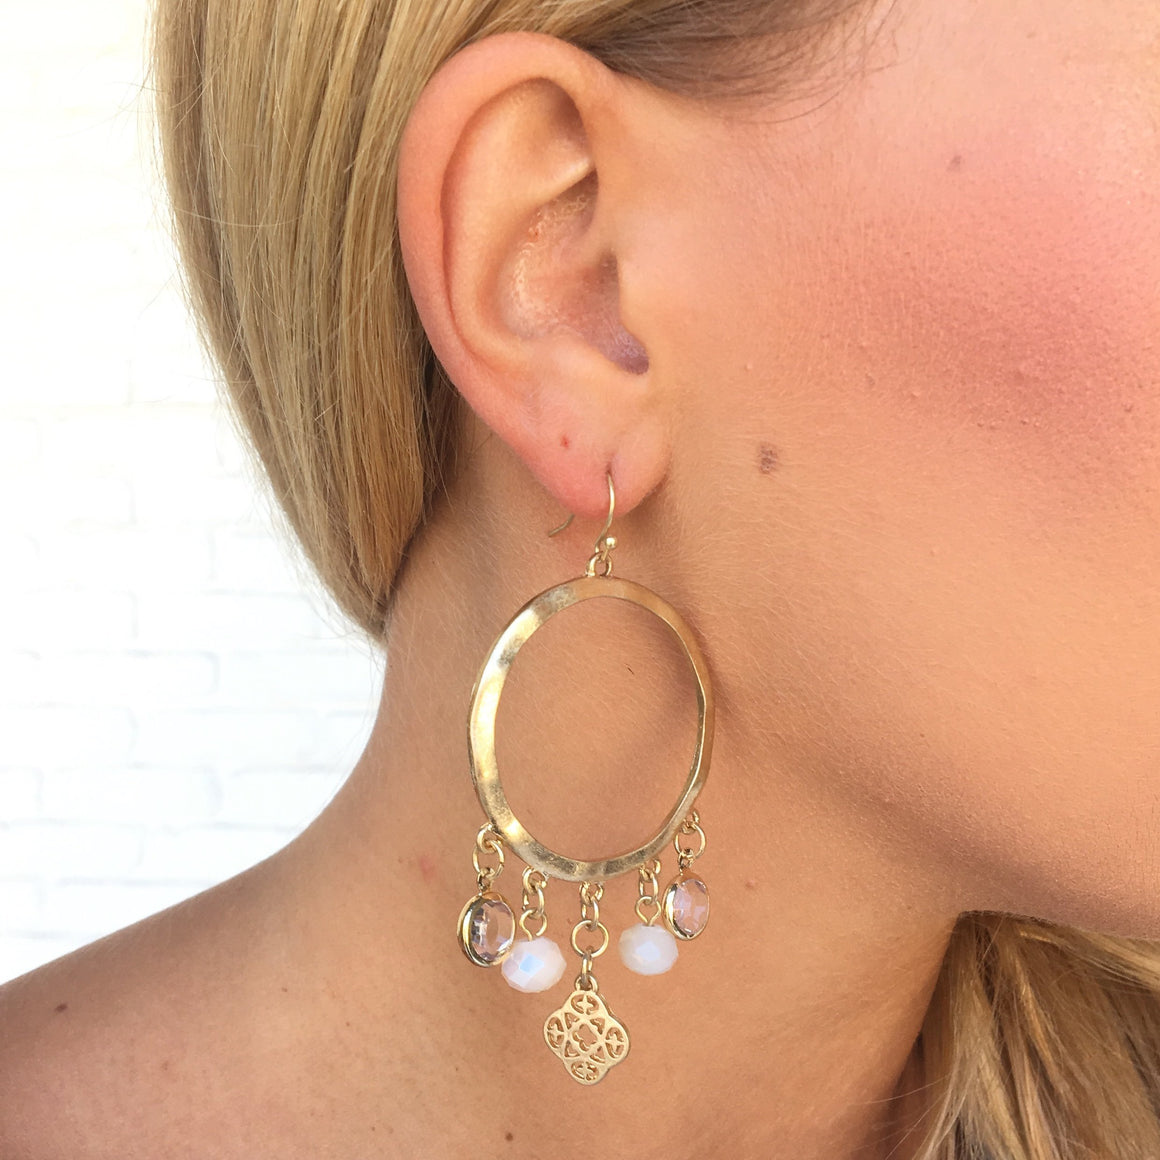 Charming Chic Hoop Earrings In Gold - Dainty Hooligan